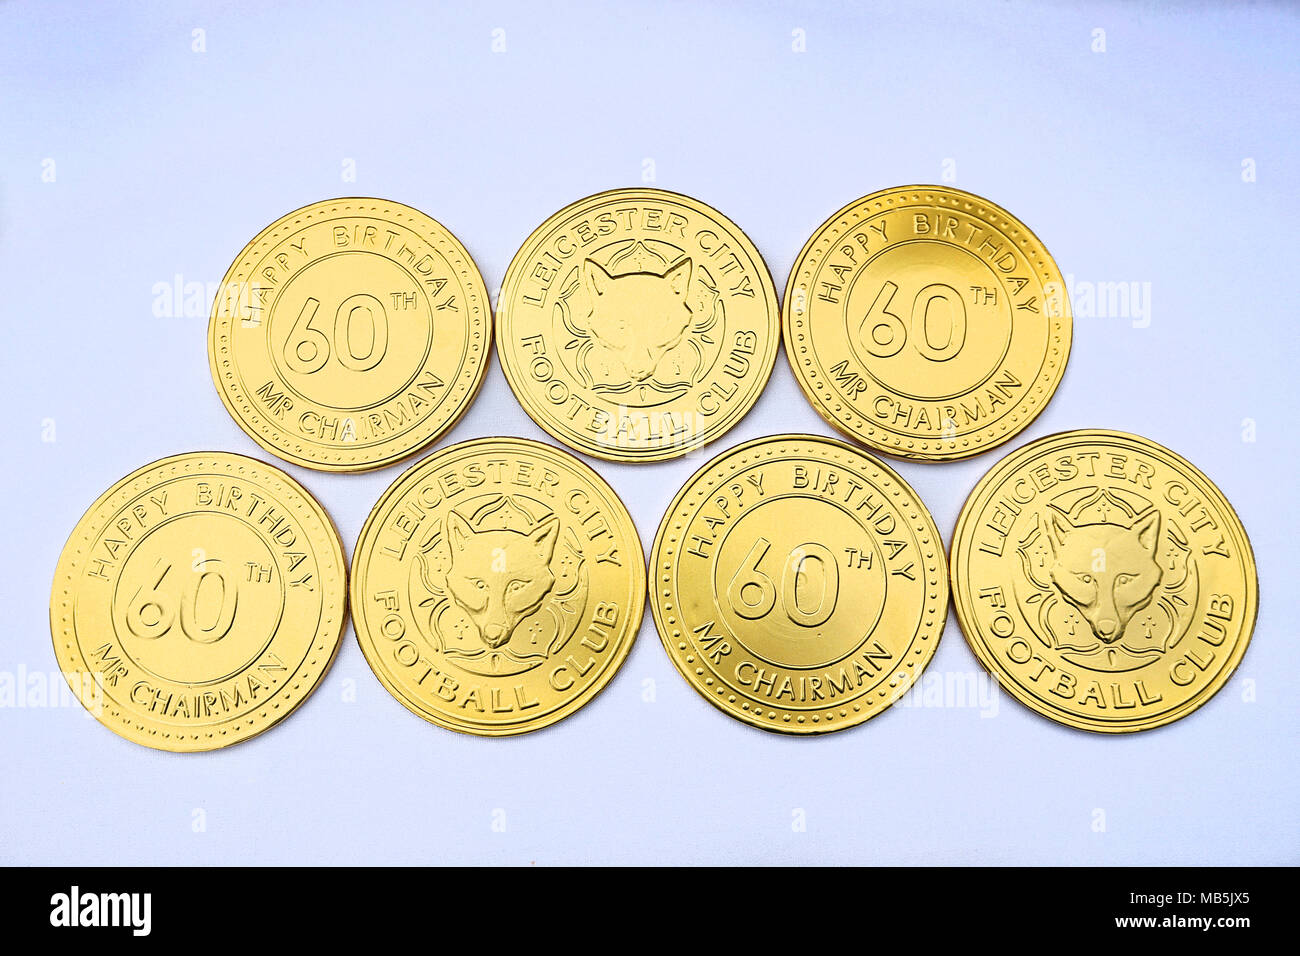 Chocolate coins being given away by Leicester City for the 60th anniversary of the chairman during the Premier League match at the King Power Stadium, Leicester. - Stock Image